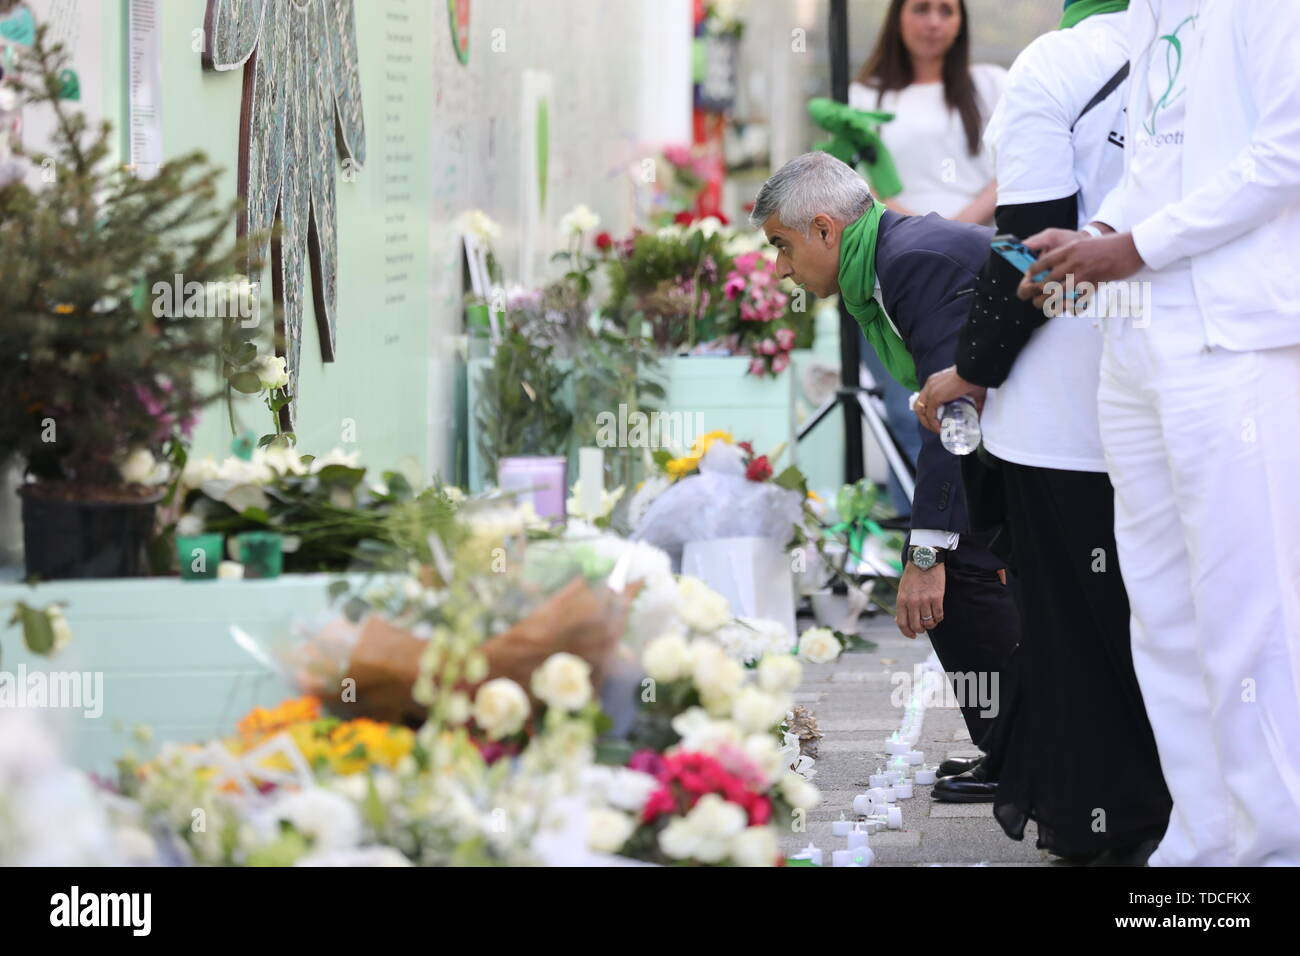 Mayor of London Sadiq Kahn during a wreath laying ceremony outside Grenfell Tower, London, to mark the two-year anniversary of the tower block fire in memory of the 72 people who lost their lives. - Stock Image